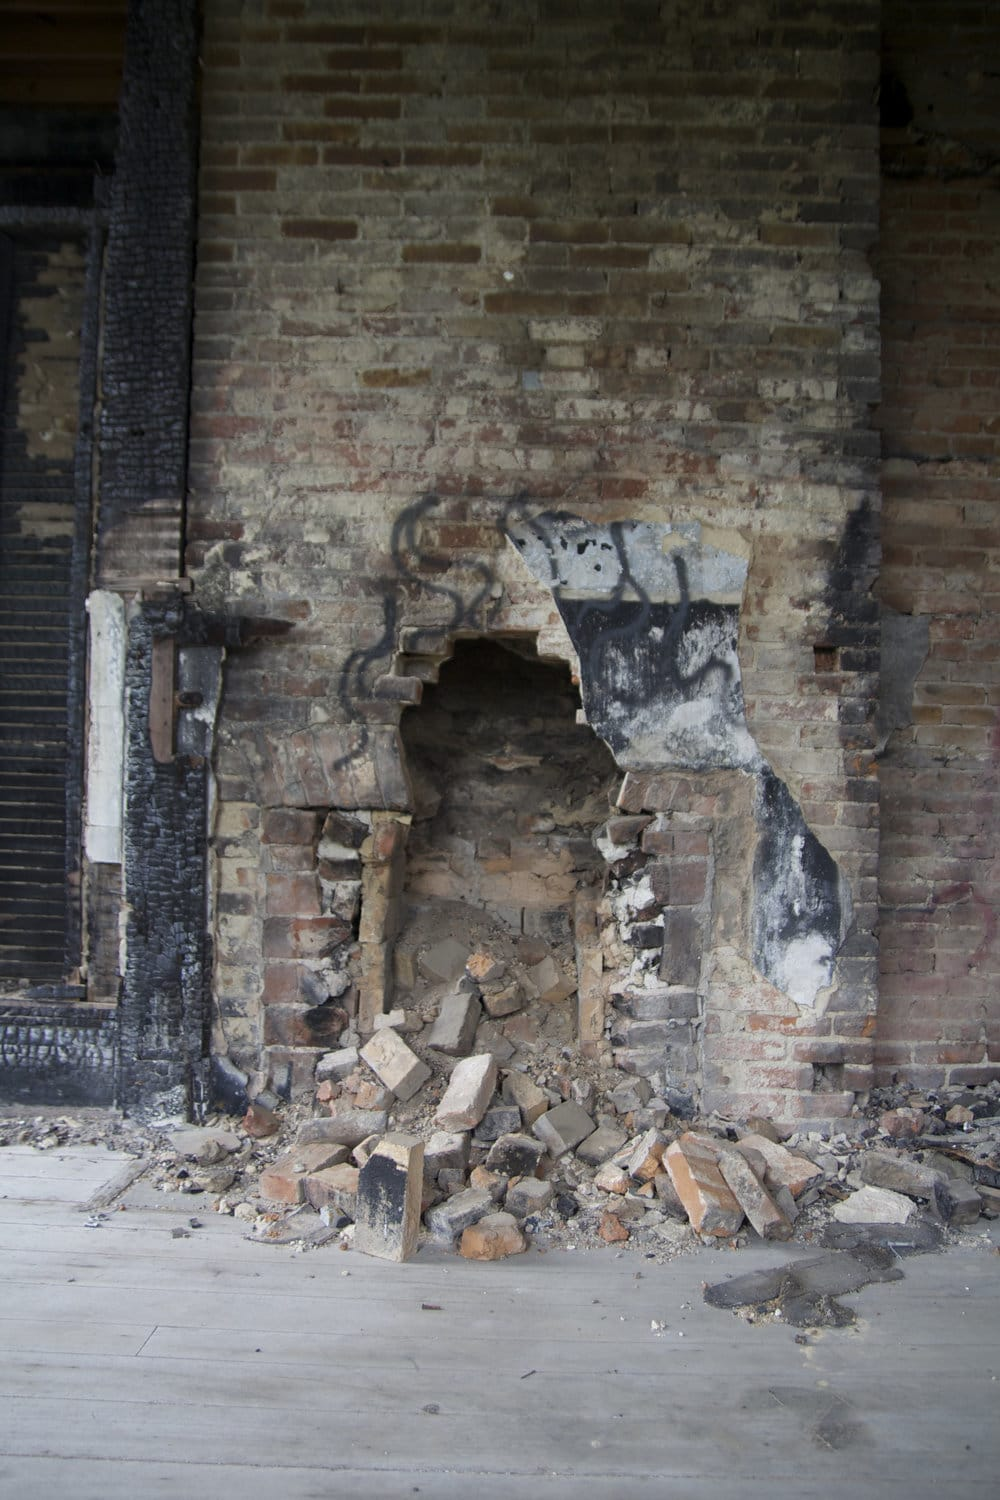 Another view of a 2nd floor bedroom with fire damage to the wood portions of the room and vandalism to the interior hearth. I wonder how many cold evenings were warmed by this fireplace before heat and electricity were available.